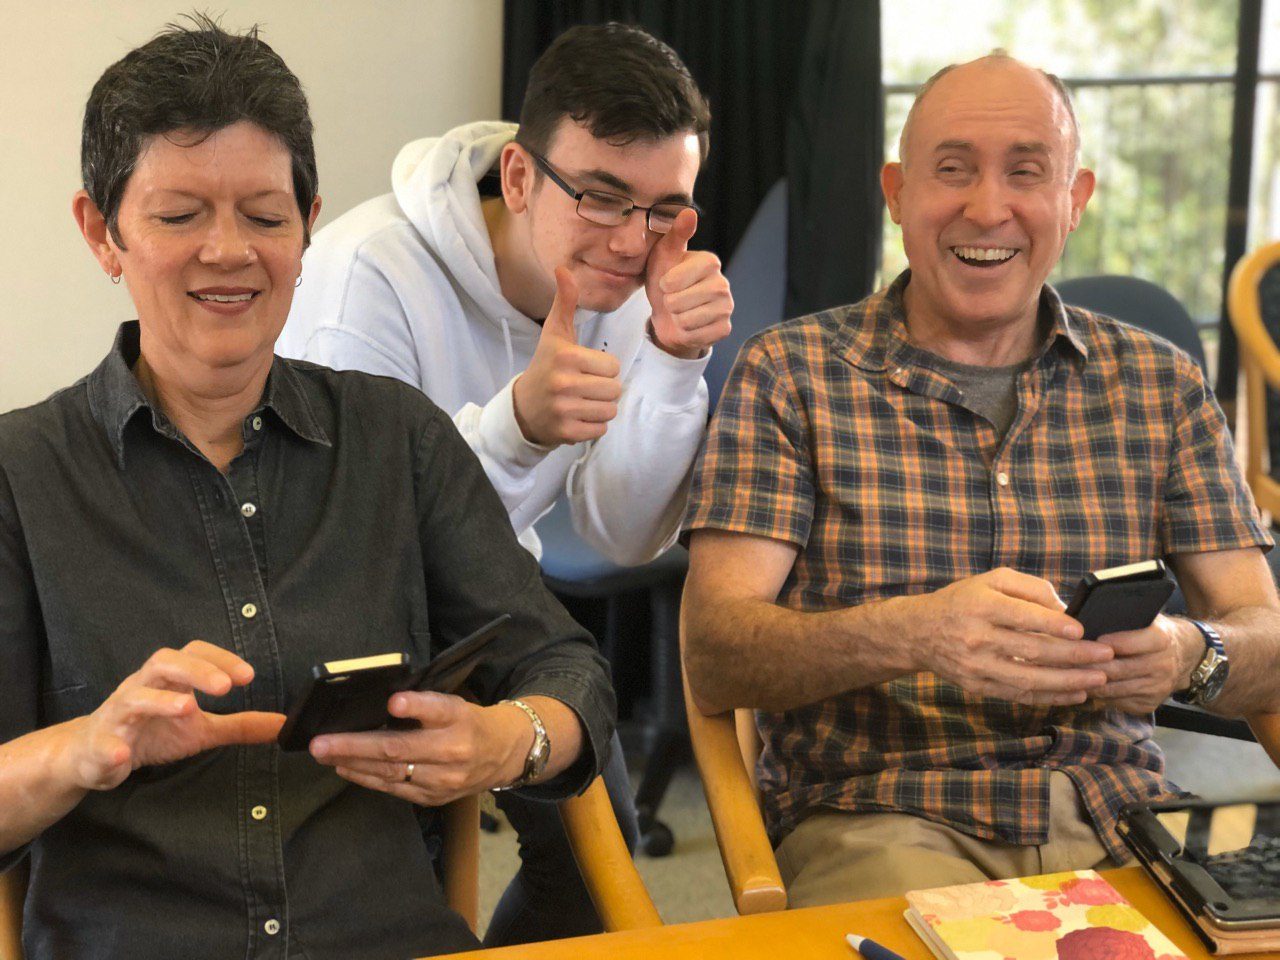 Two elderly people on phones and a youngster smiling with thumbs up displayed